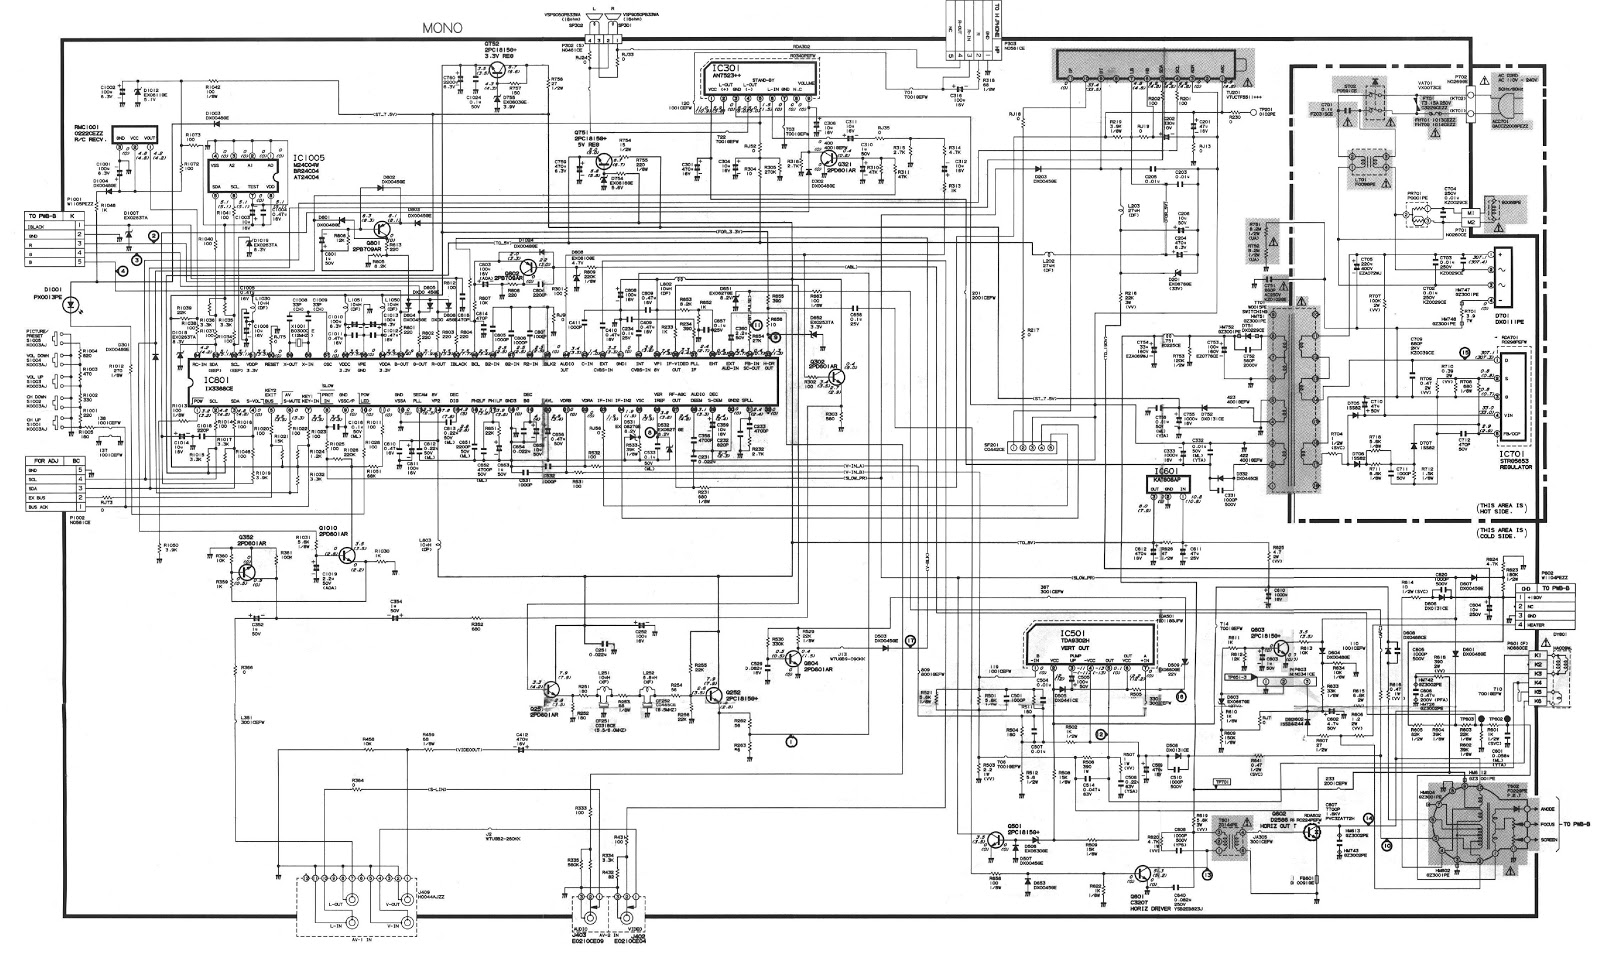 bush dled32165hddvd and vestel 32 inch lcd tvs smps circuit diagram and sharp crt tv 21d2g crt